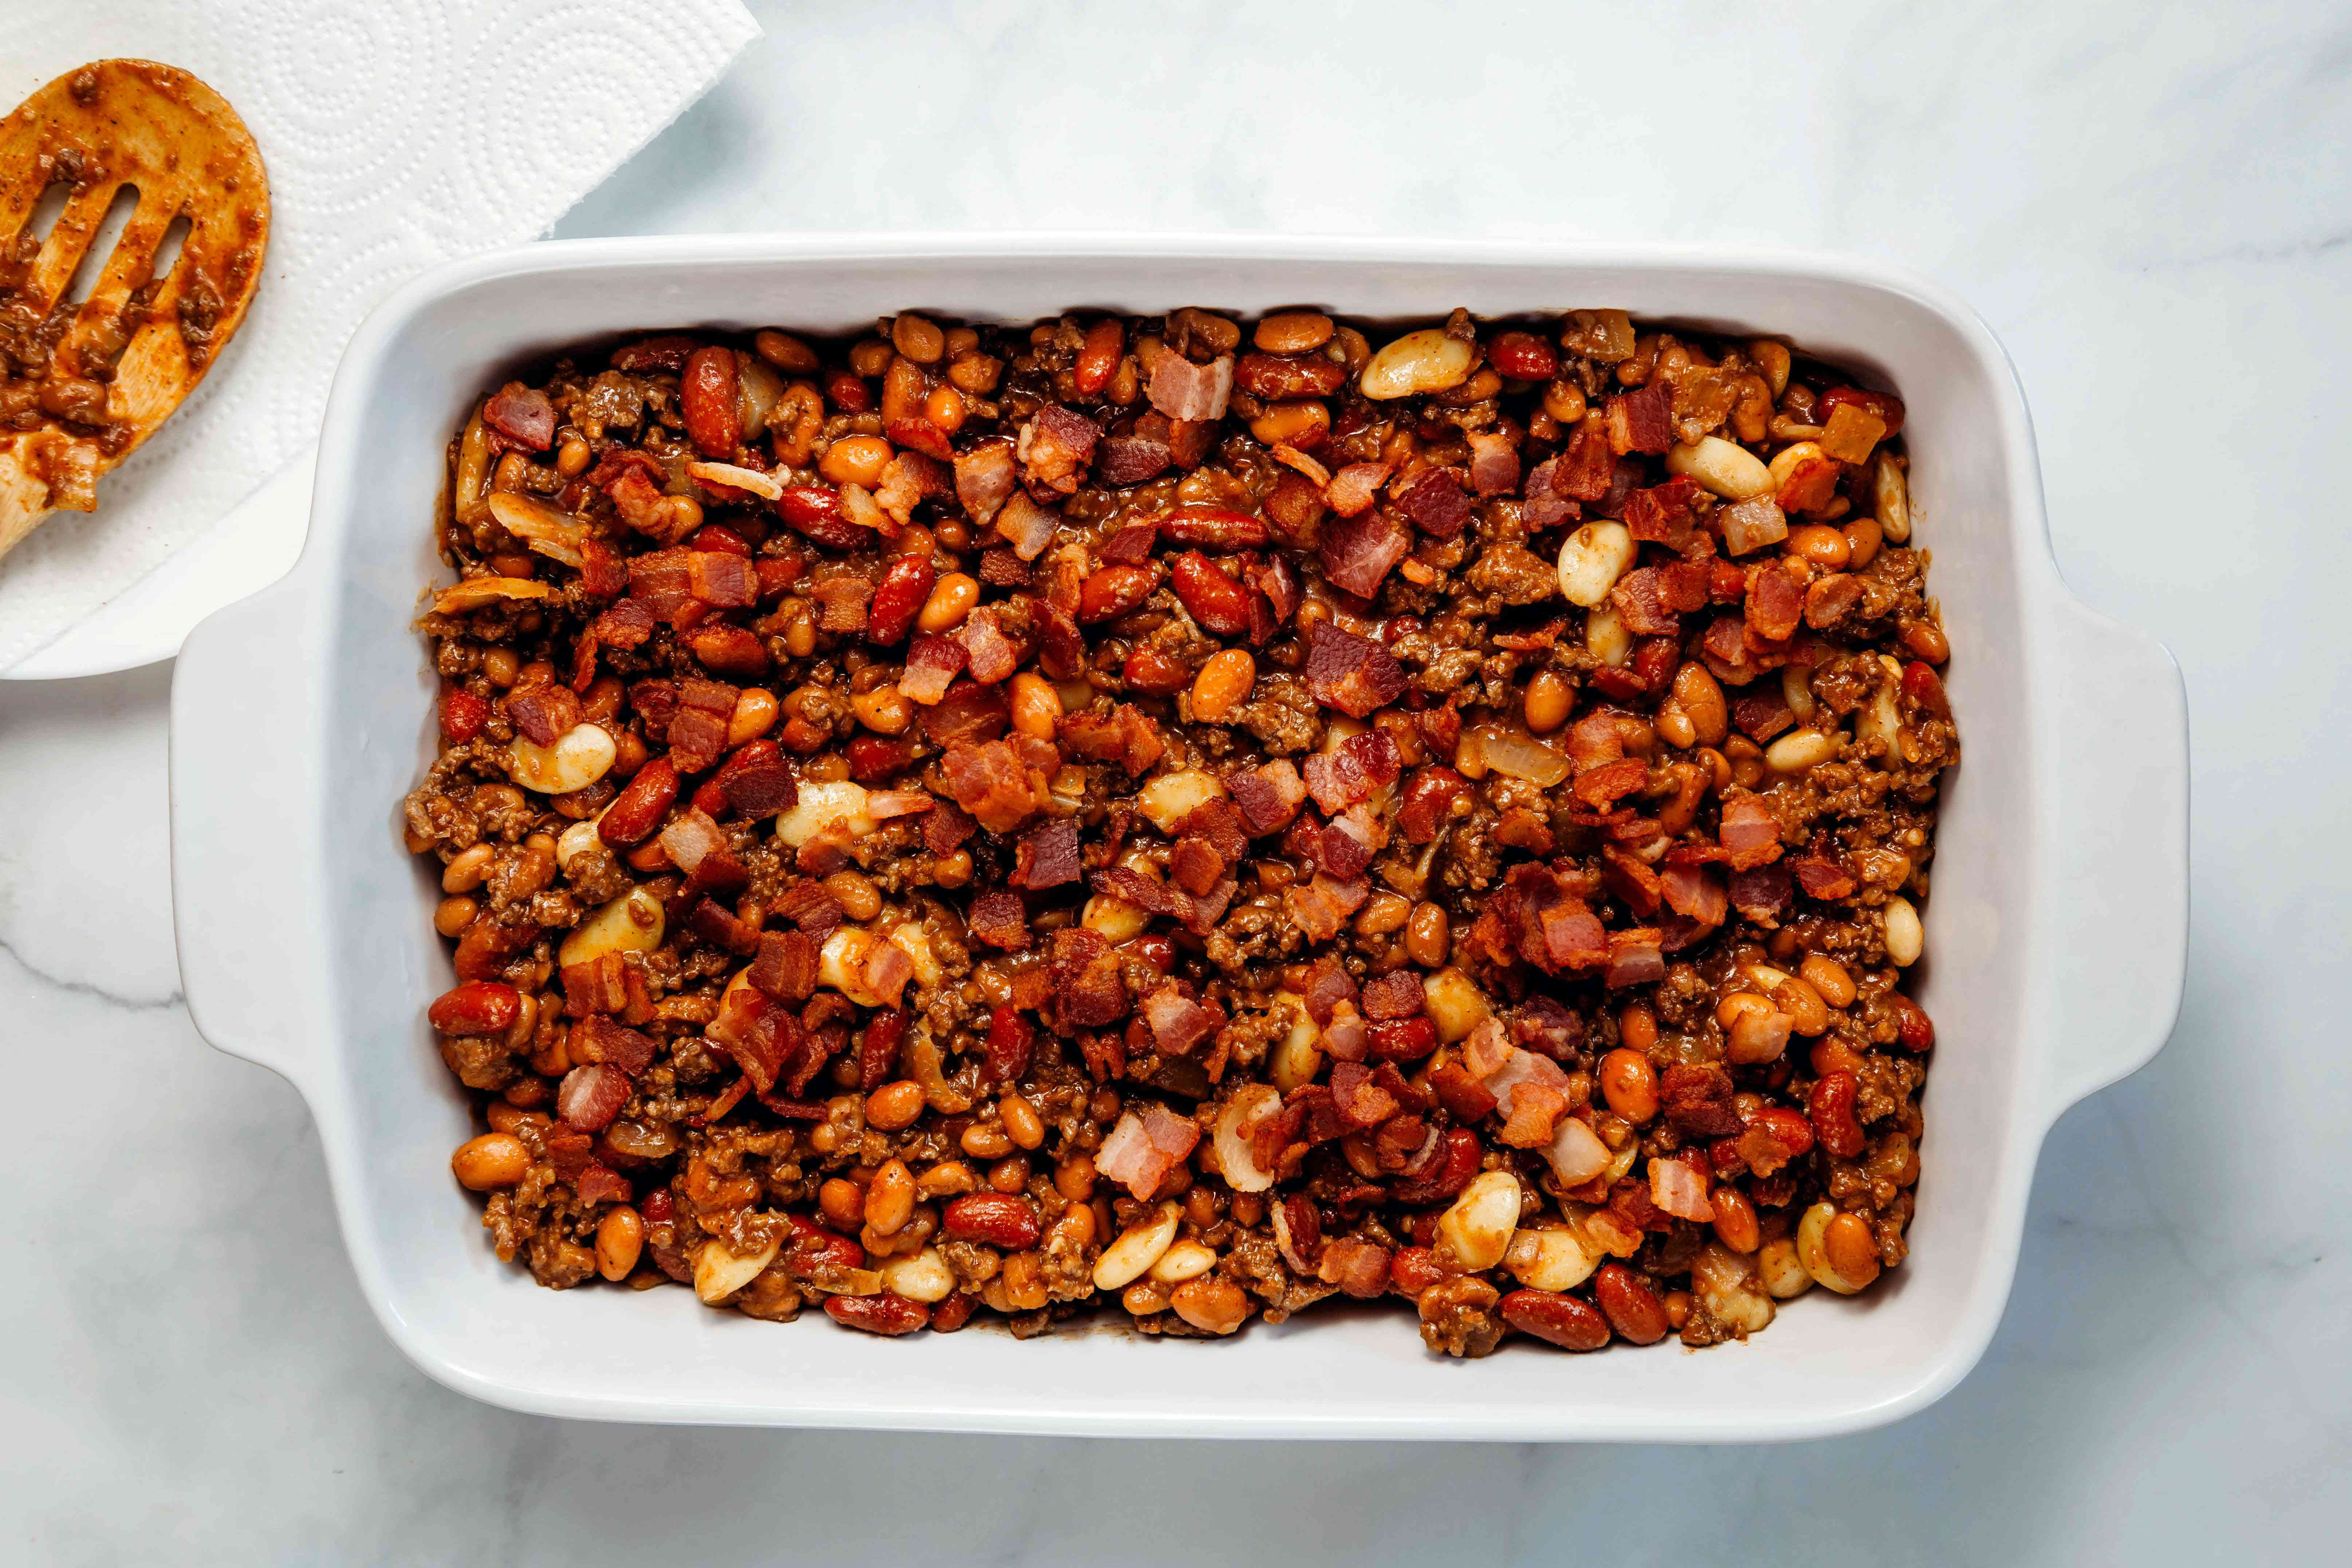 beef and bean mixture in a baking dish